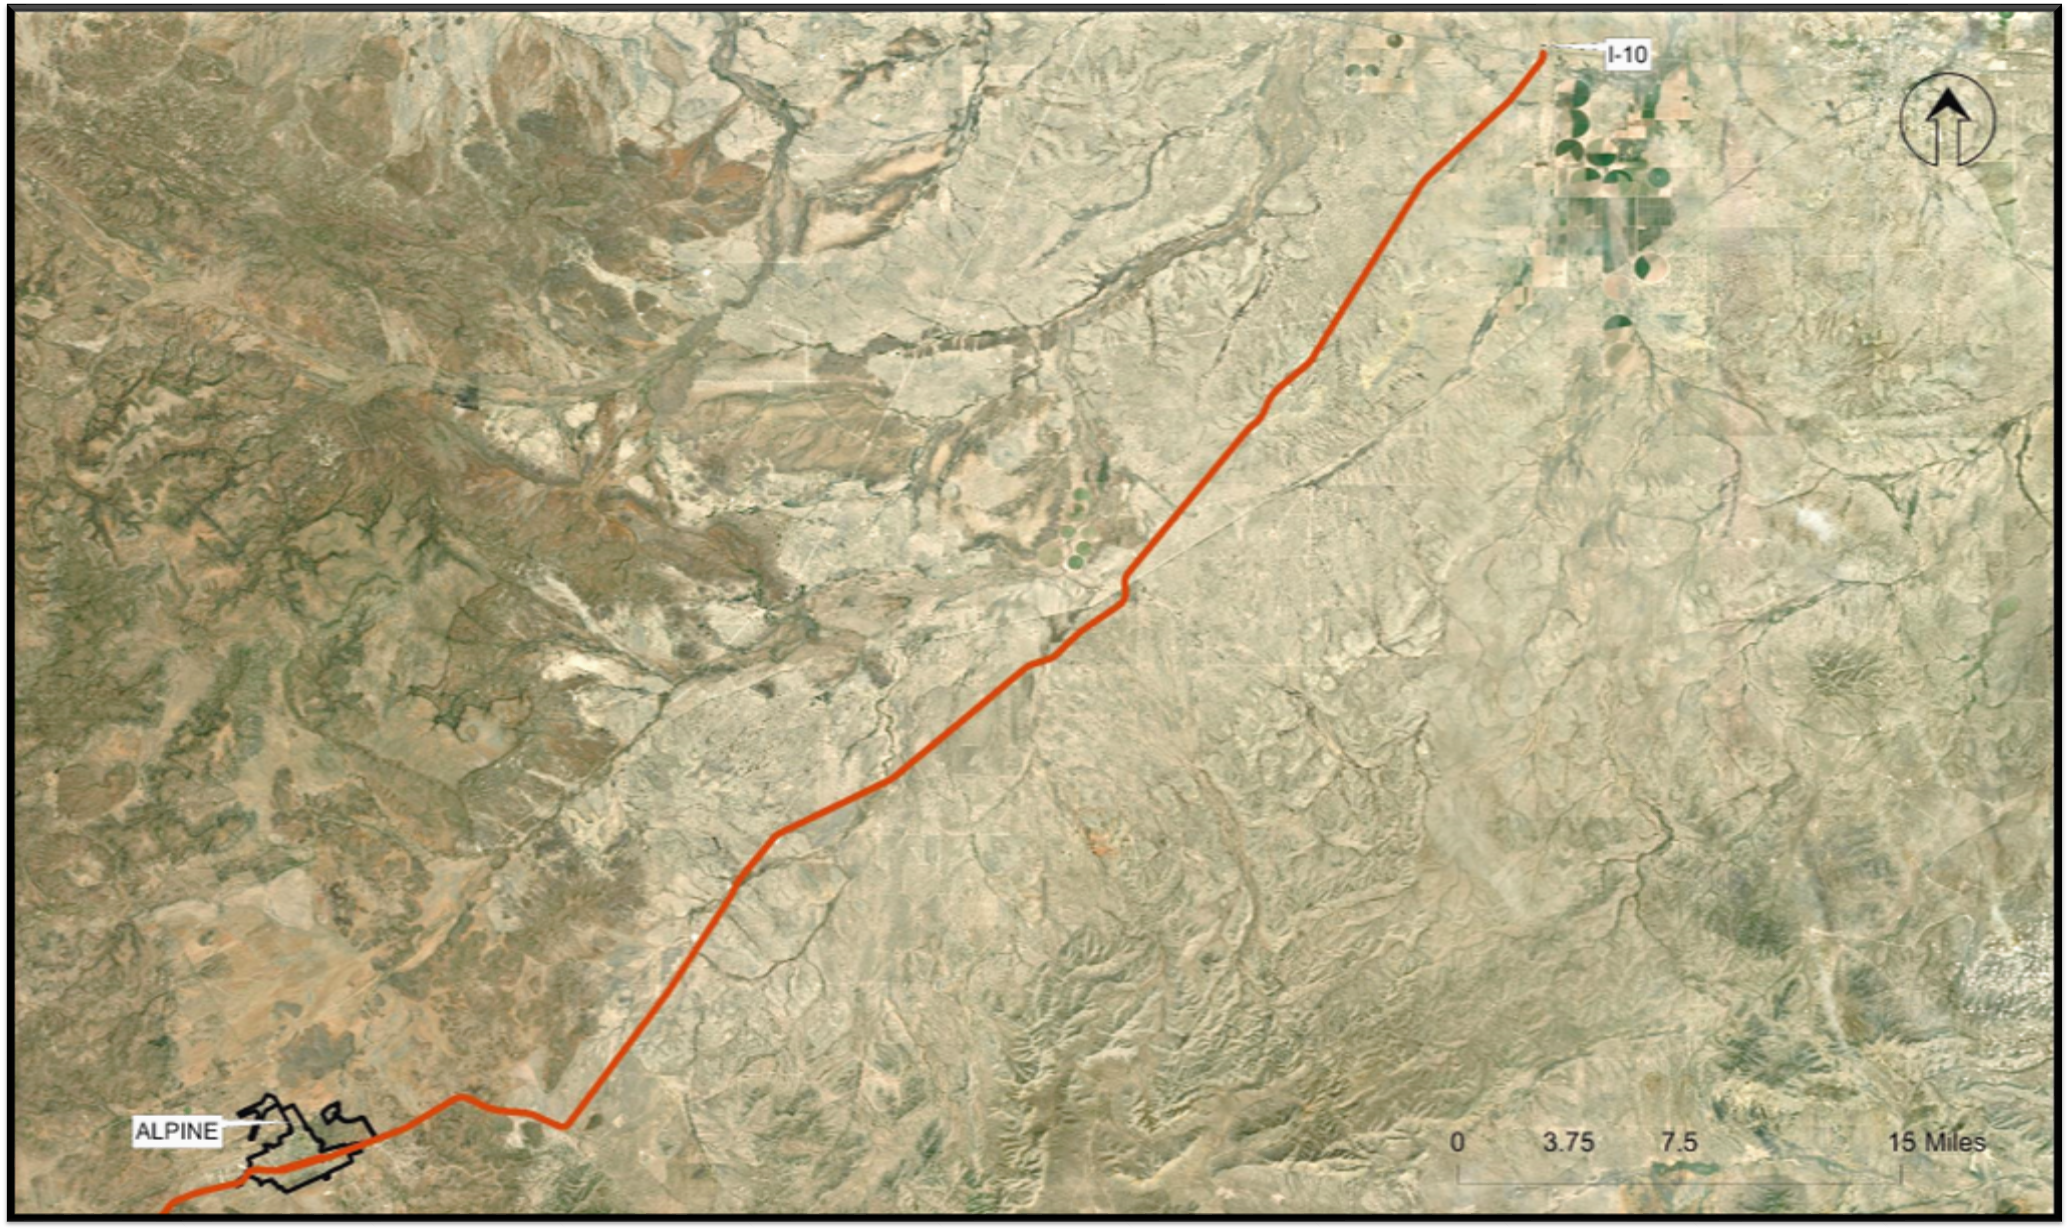 Top 3 Improvement Options for Area F (US 67 from Alpine to I-10)